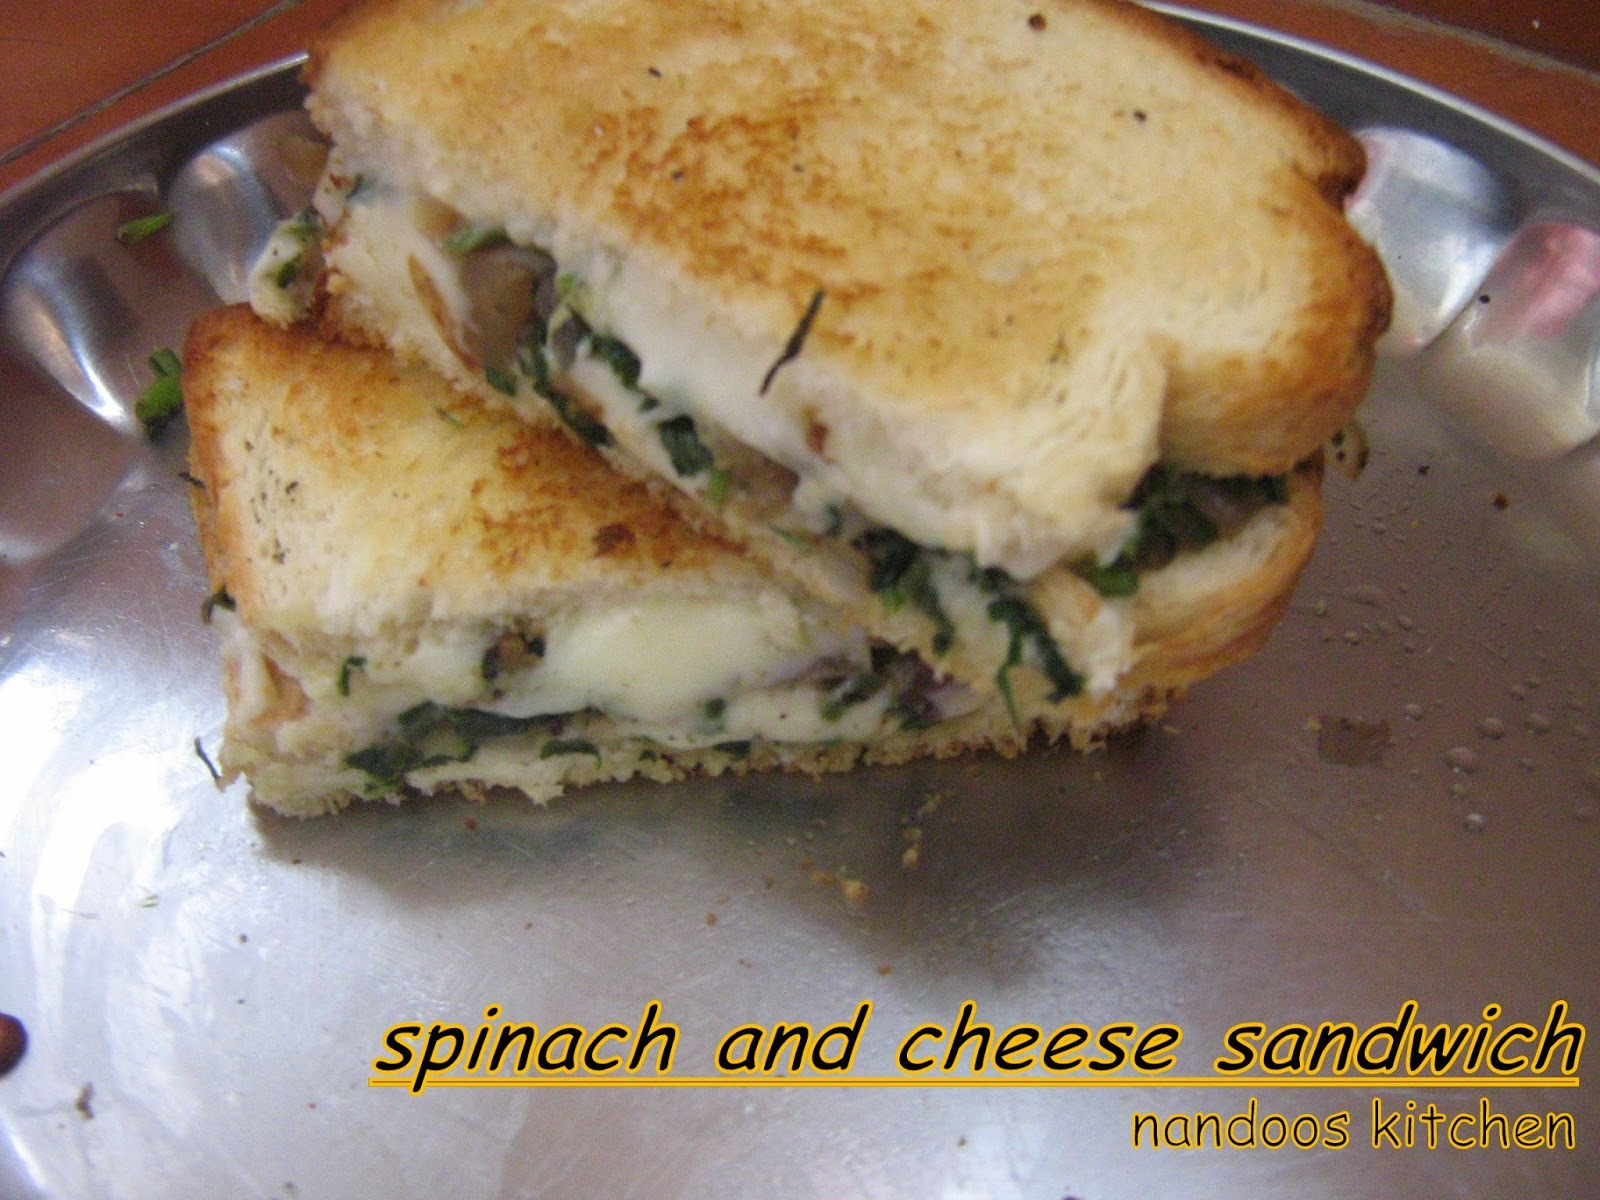 Cheese and spinach sandwich